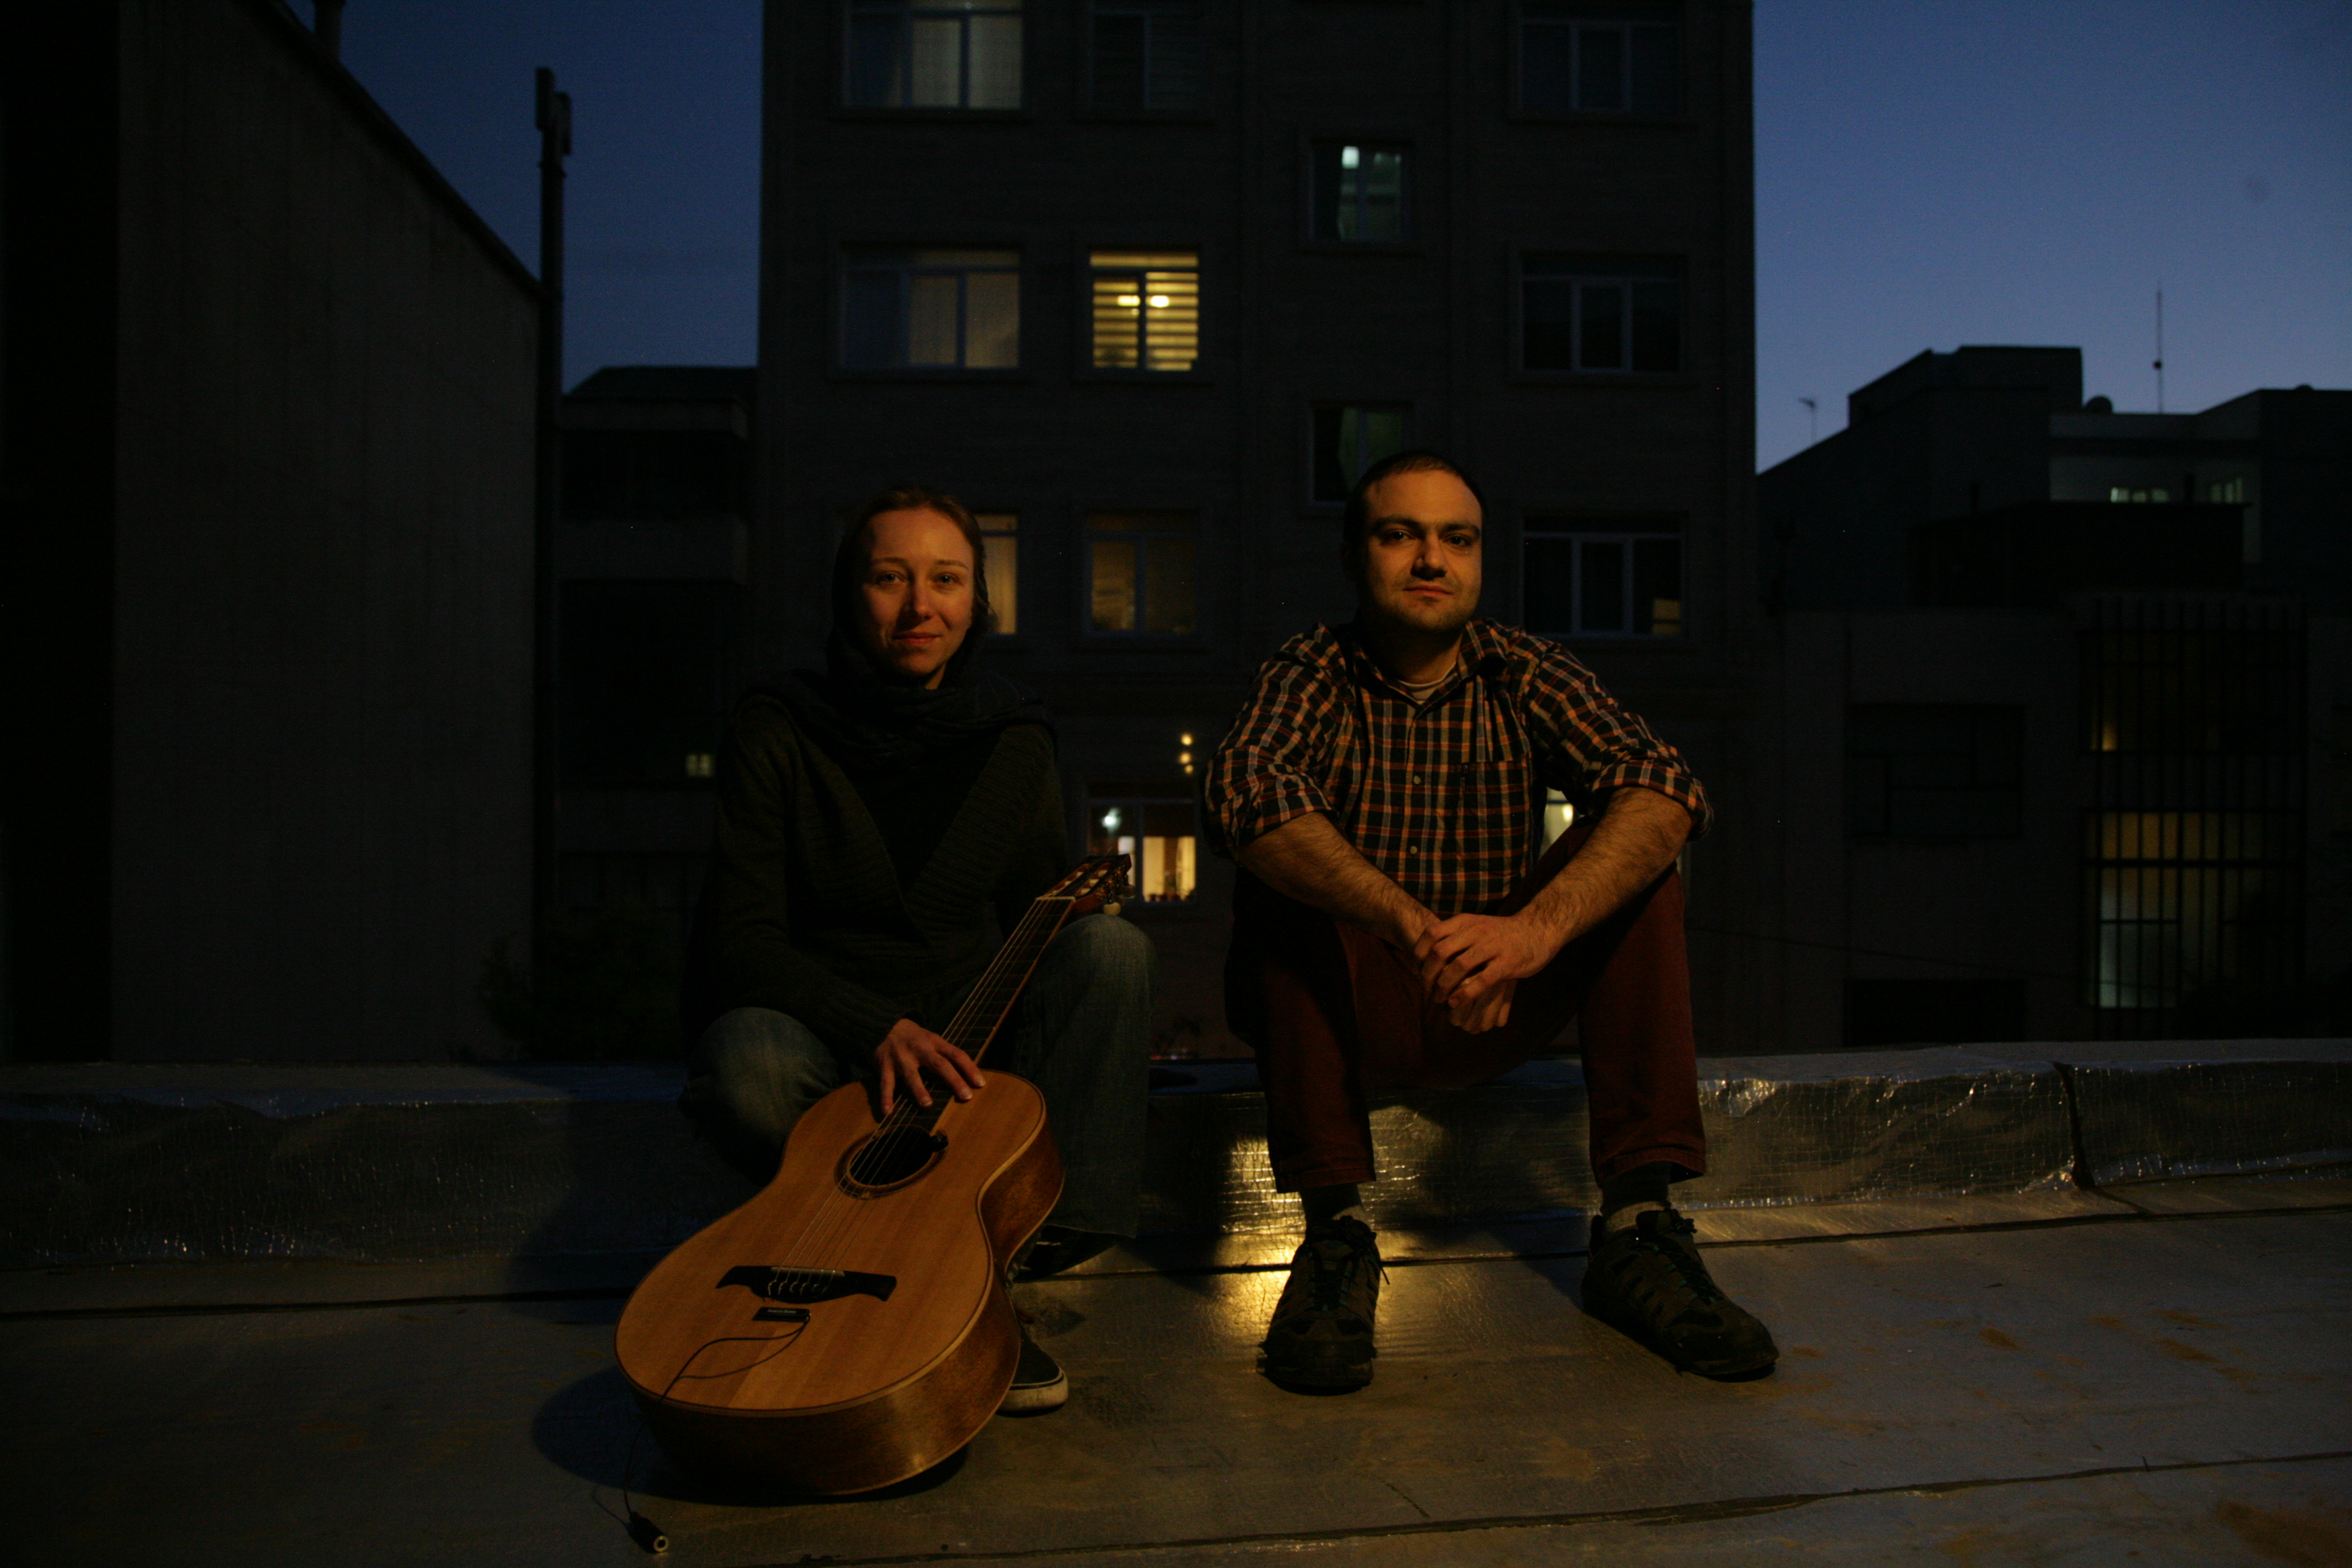 Leonie Roessler and Sohrab Motabar sitting outside